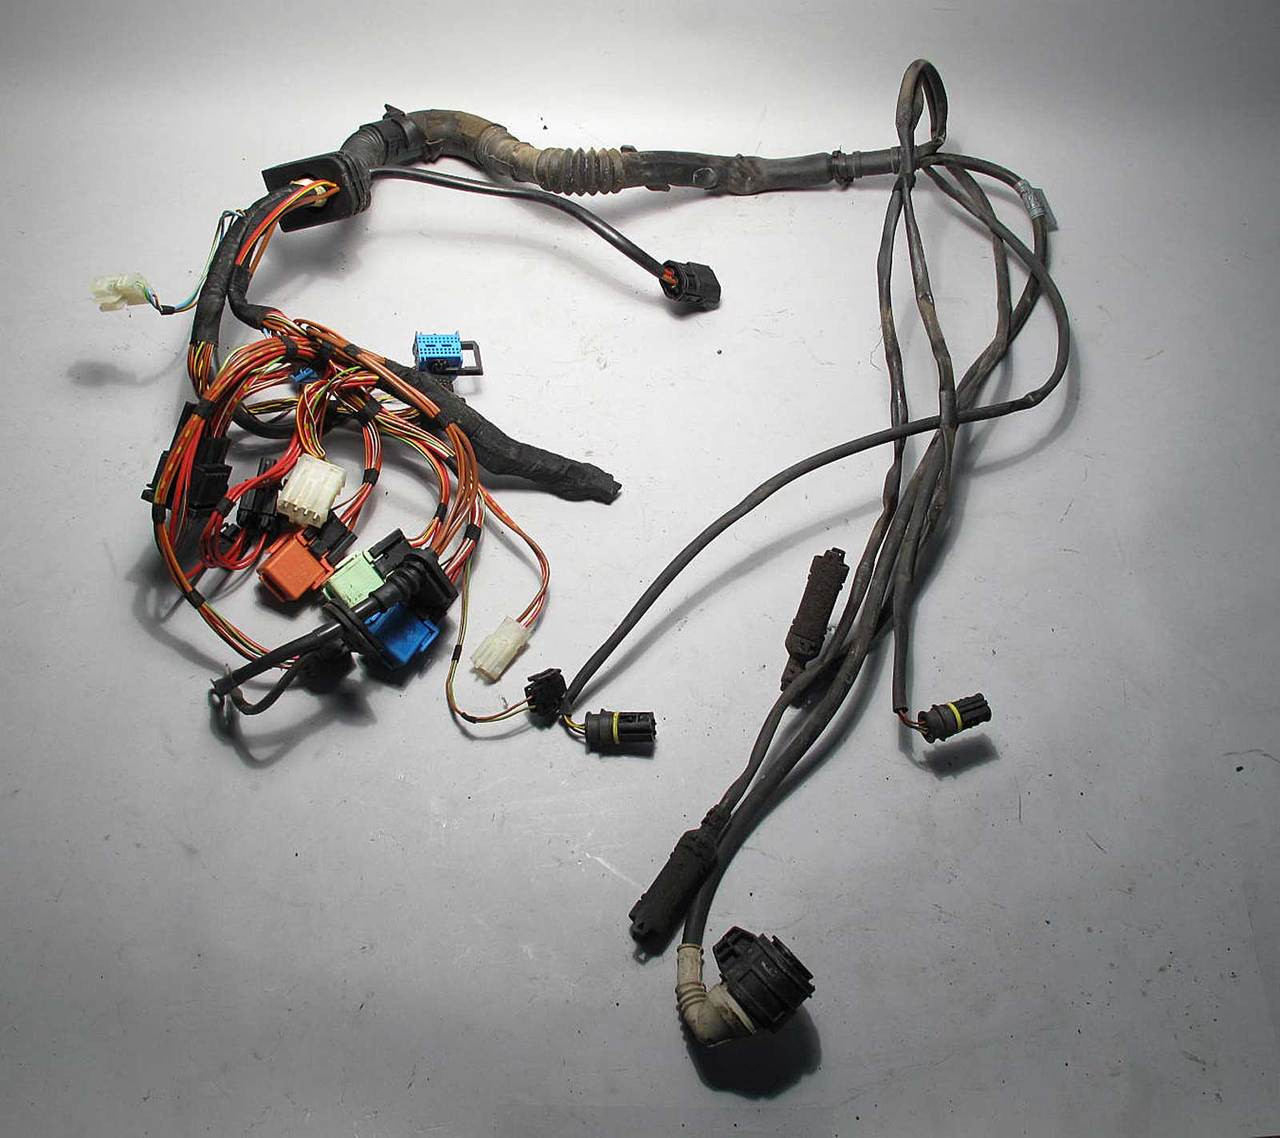 bmw z3 roadster coupe m54 automatic transmission wiring harness 2001 rh prussianmotors com bmw z3 stereo wiring harness BMW Battery Wiring Harness